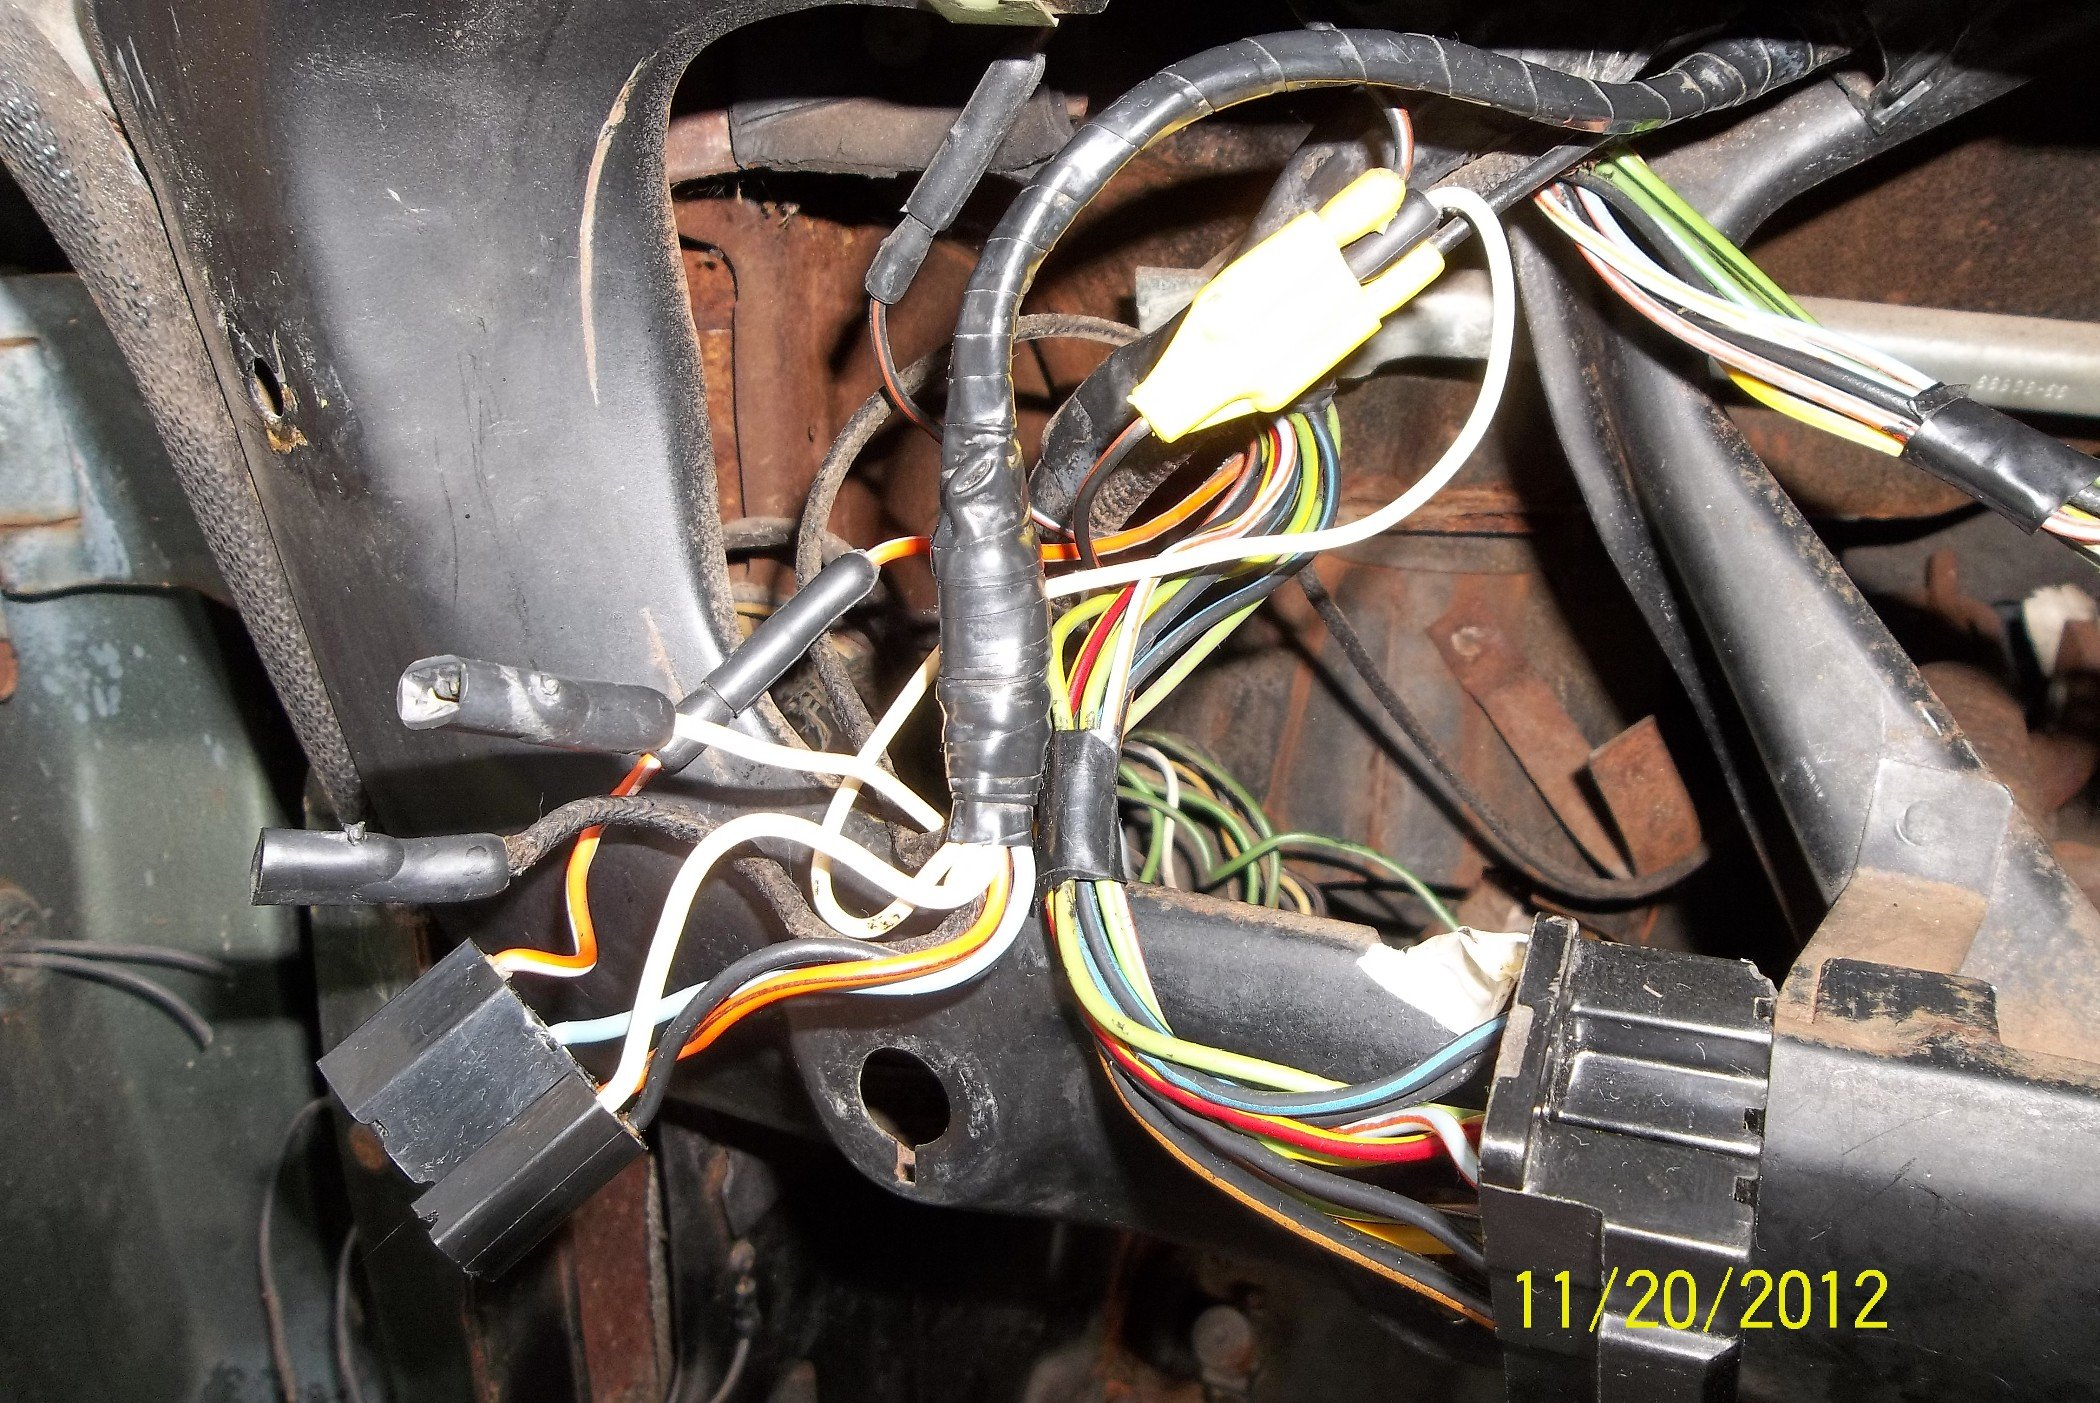 66 single speed wiper w/ washer pump wiring problems - Ford Mustang ...